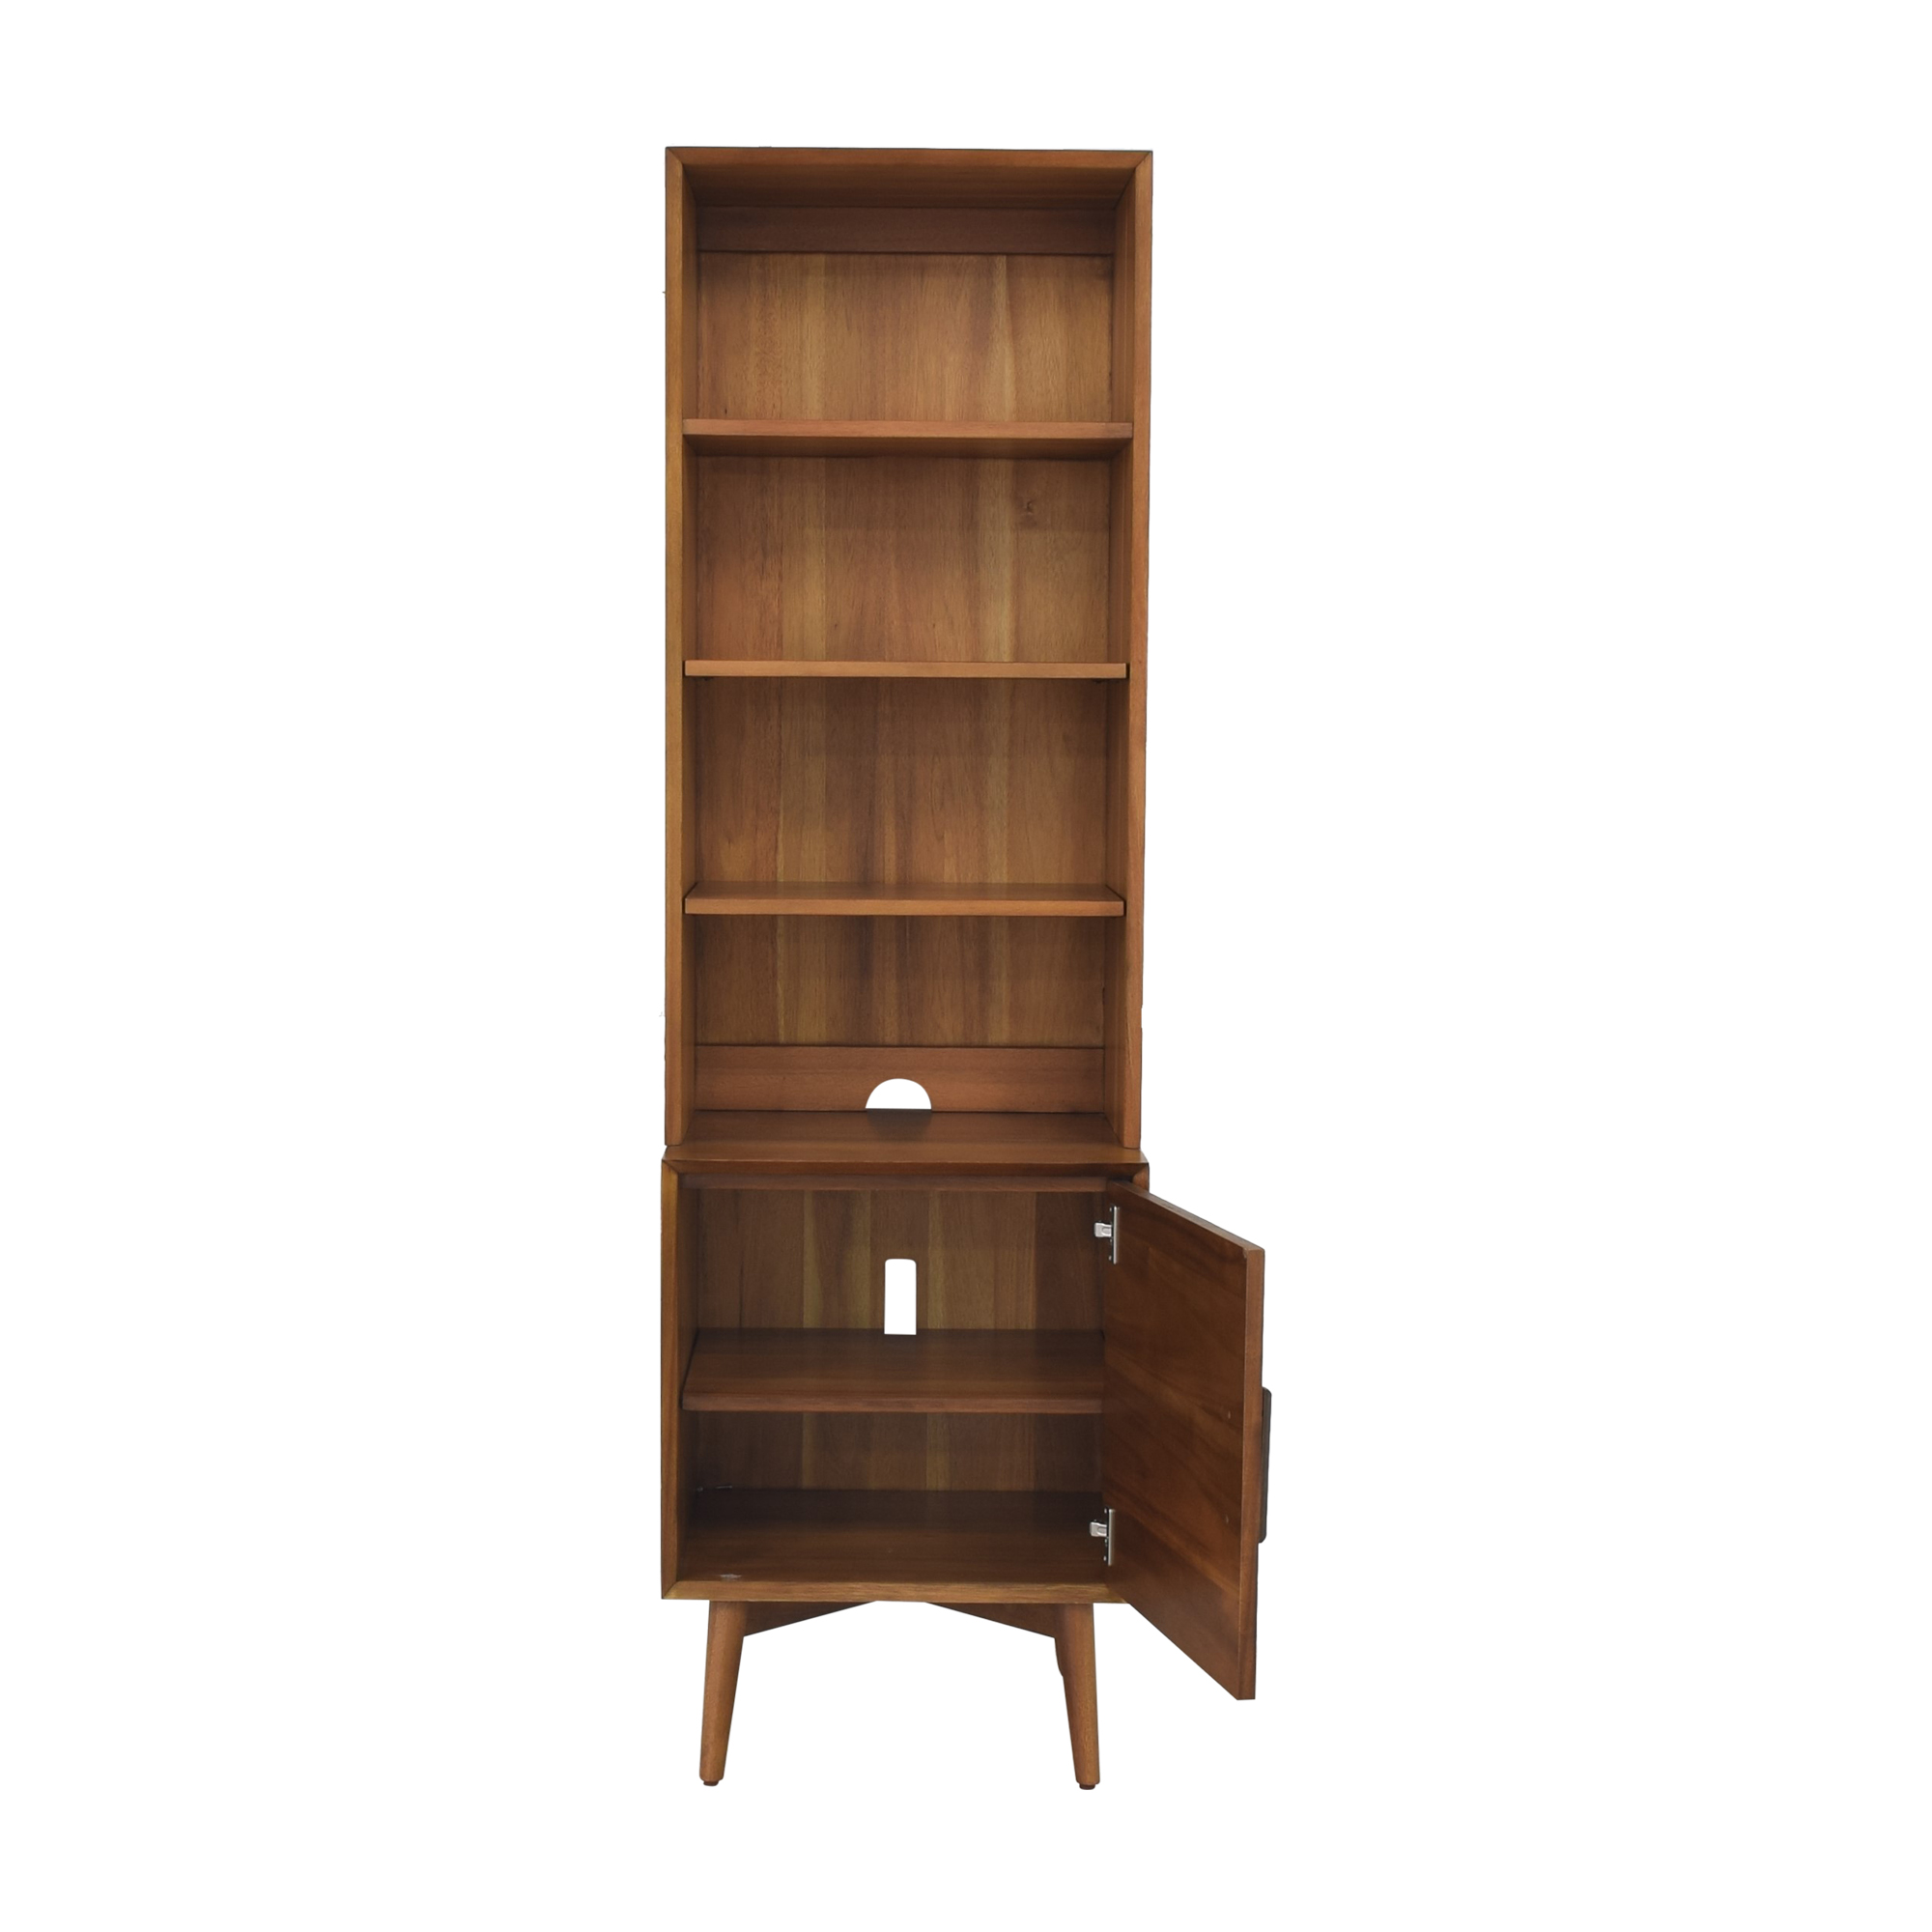 West Elm West Elm Mid Century Bookcase with Cabinet